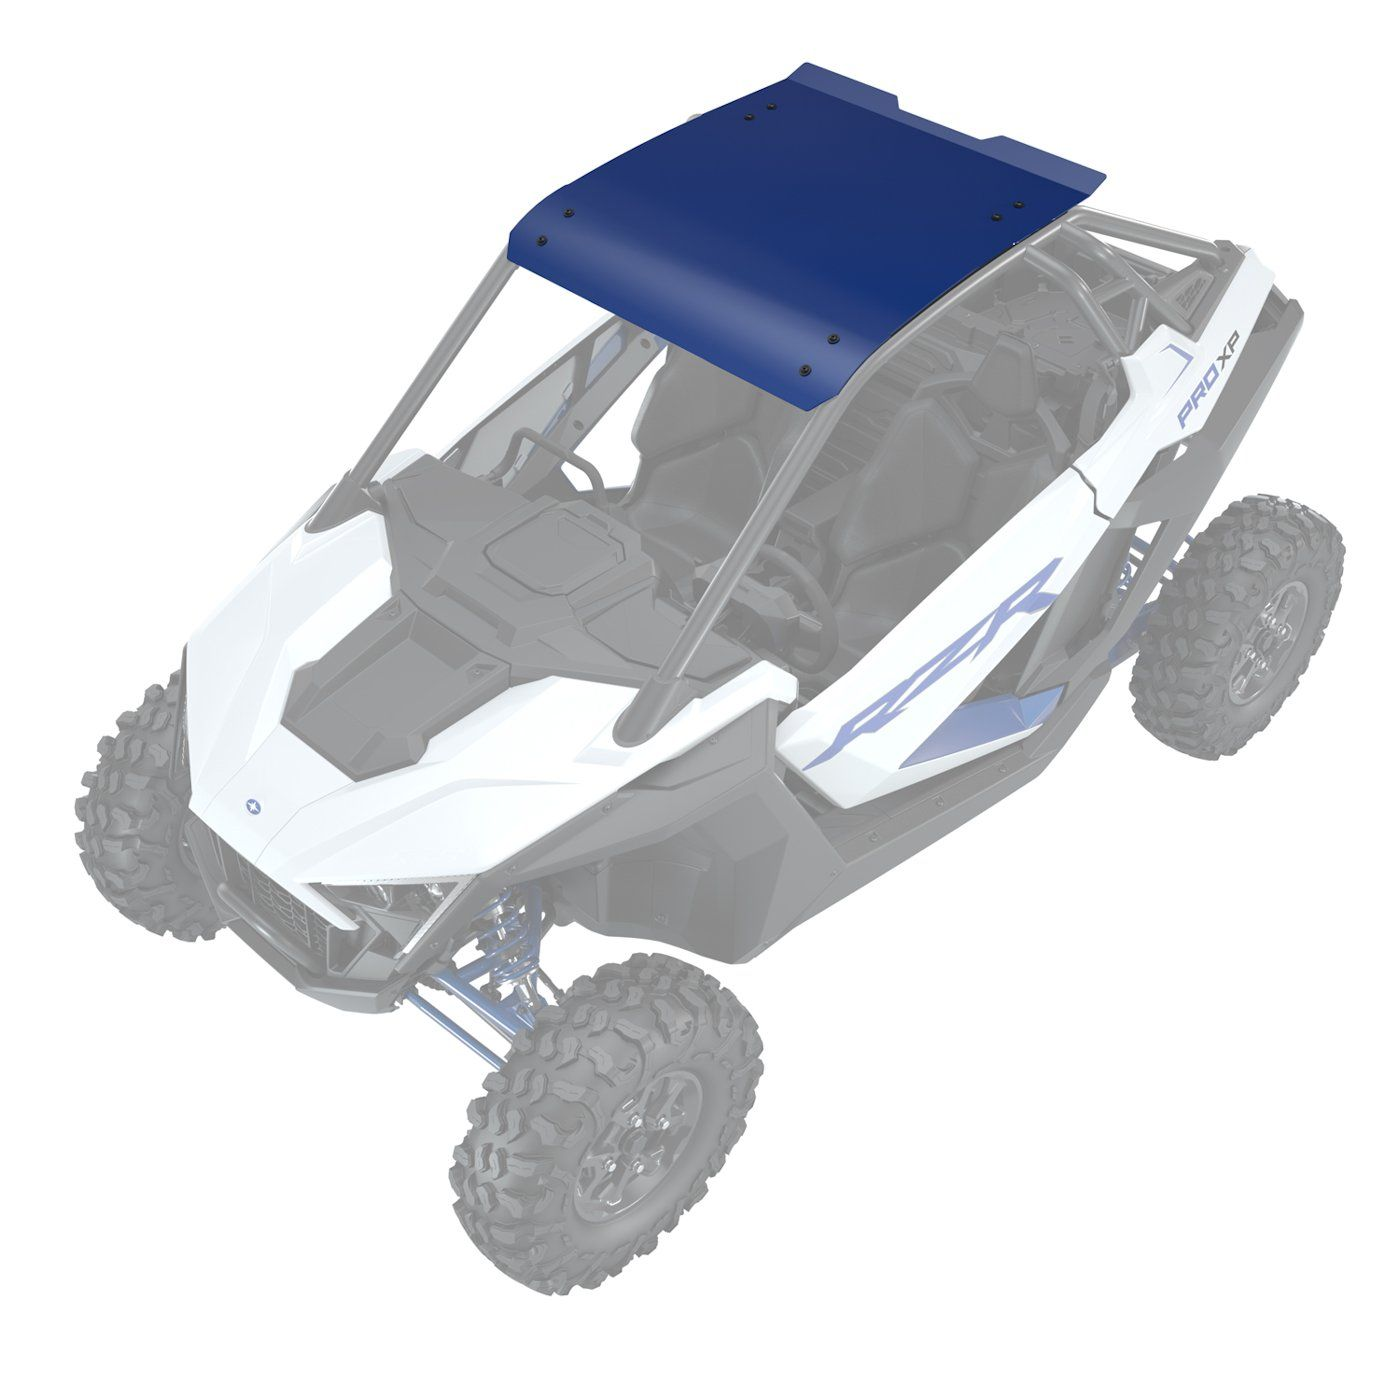 Polaris Rzr Pro Xp Aluminum Roof Black Red Blue